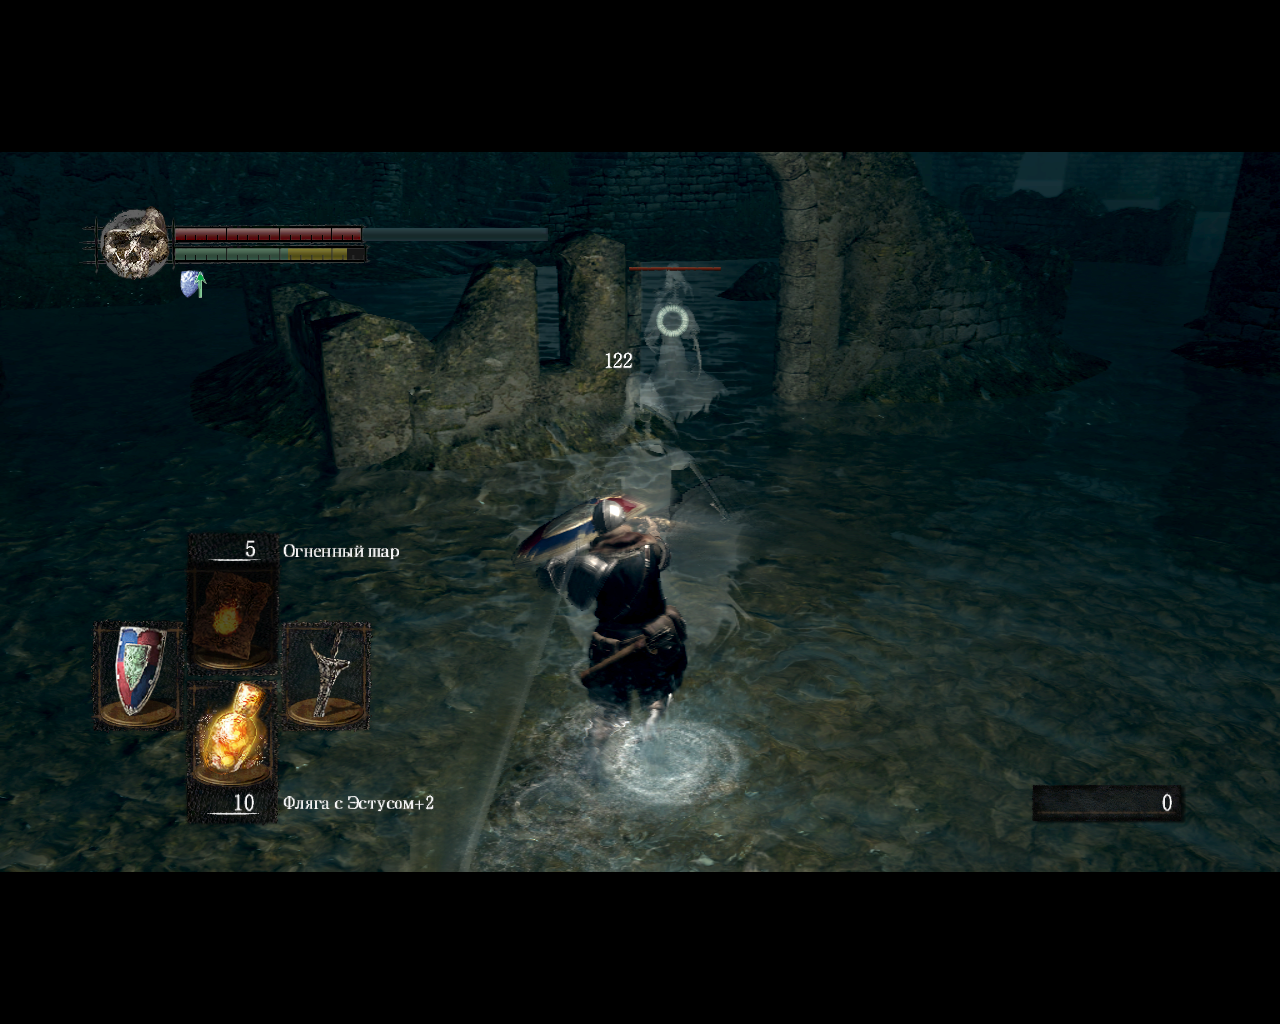 Dark Souls: Prepare to Die Edition Windows Fighting ghosts in New Londo Ruins. I am cursed (my health bar is halved).